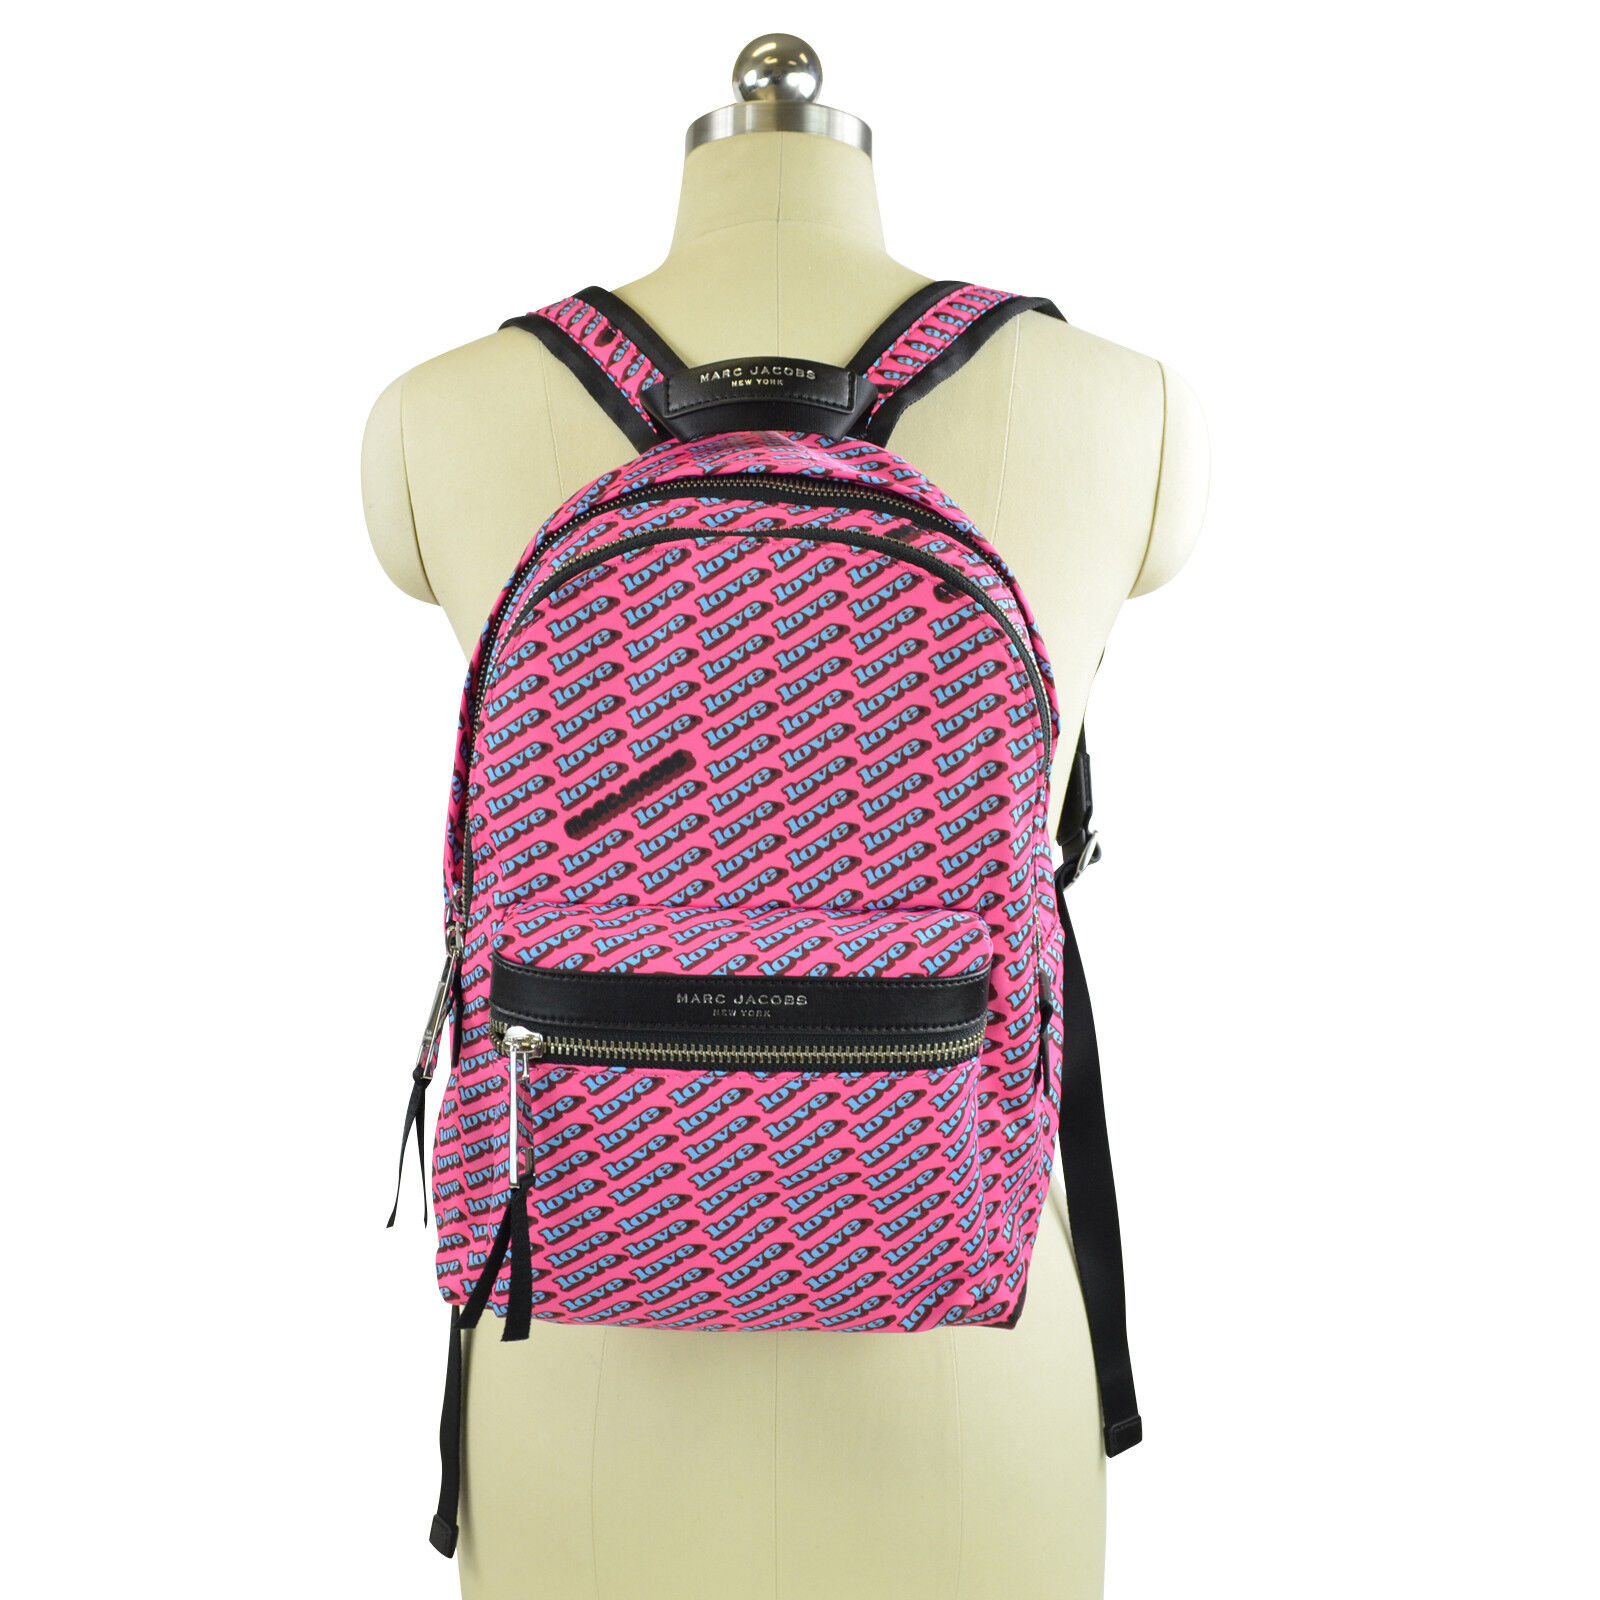 acd582d90c9f Details about NWT Marc Jacobs Women's Medium Love Print Backpack in Bubble  Gum Multi